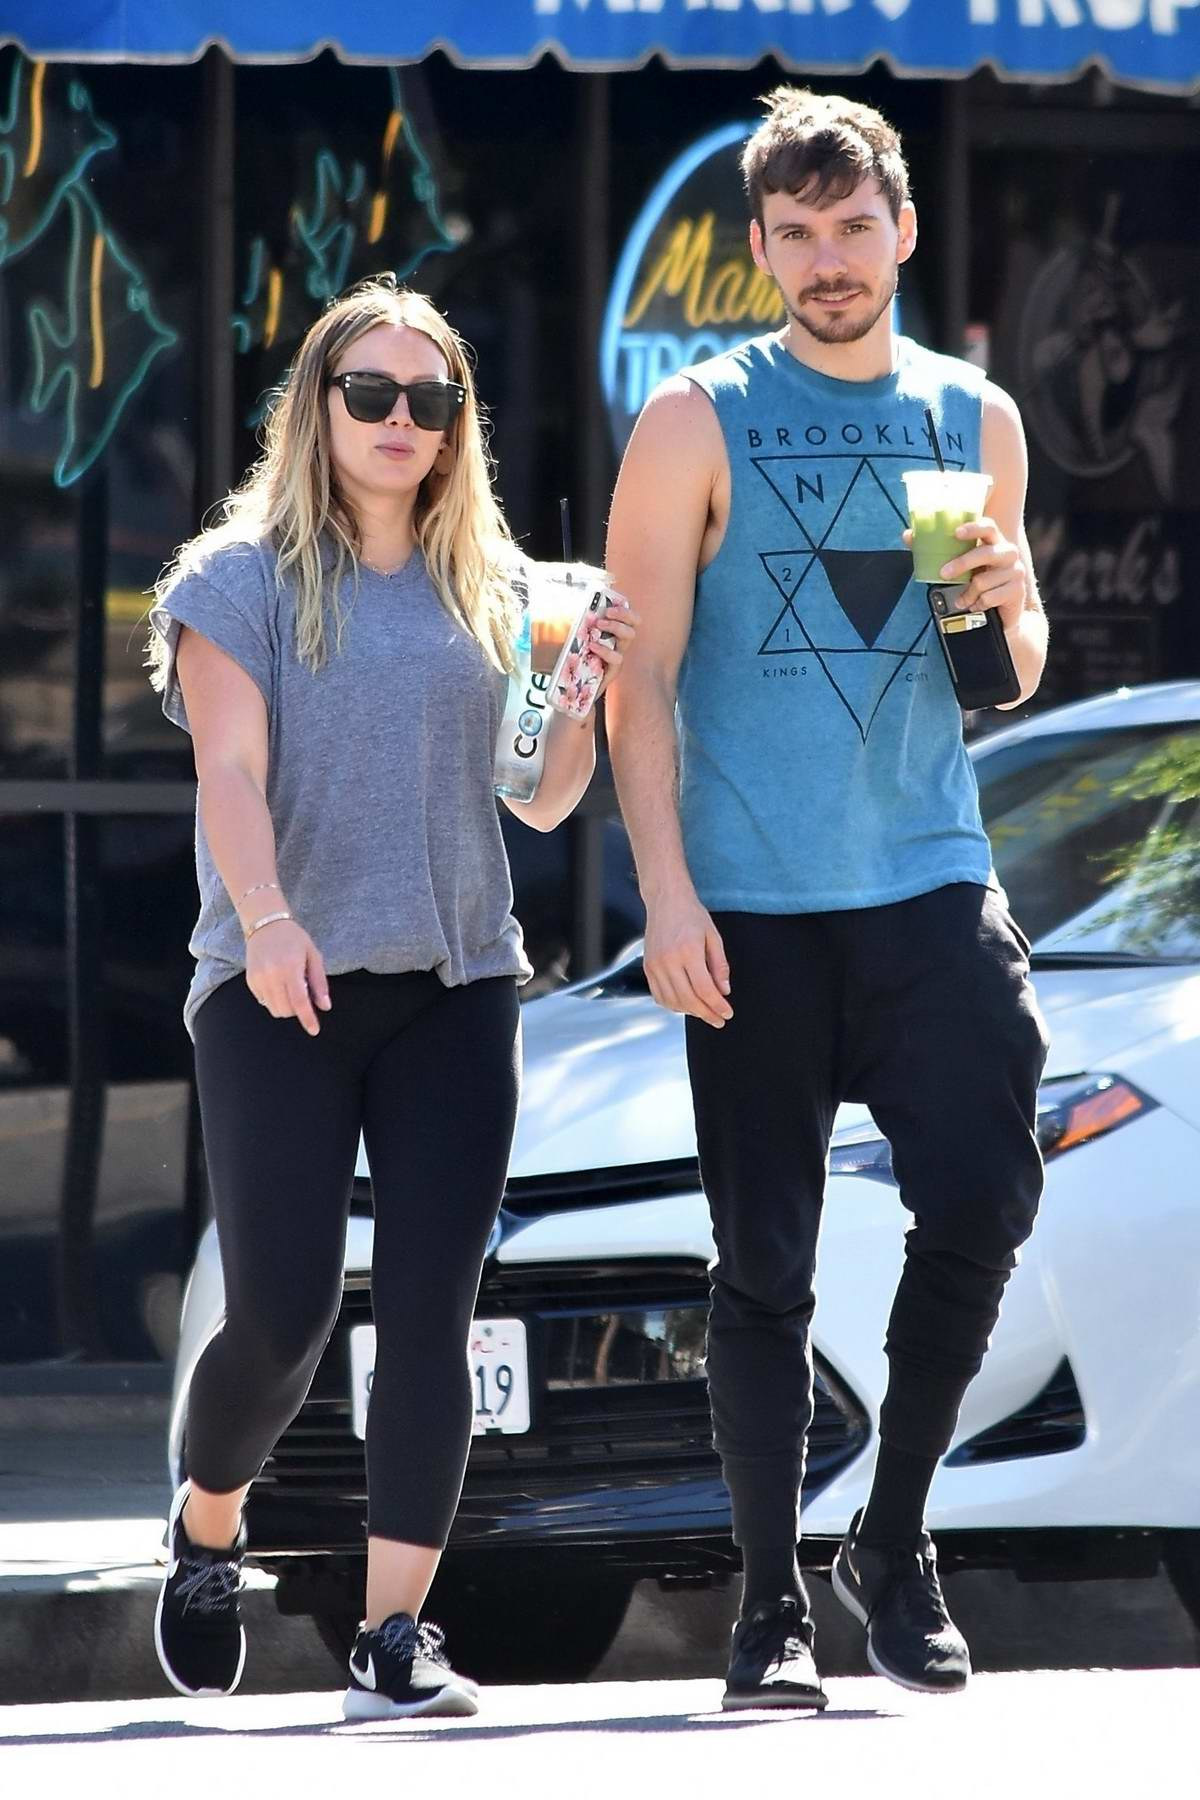 Hilary Duff and boyfriend Matthew Koma takes morning stroll together in Studio City, Los Angeles